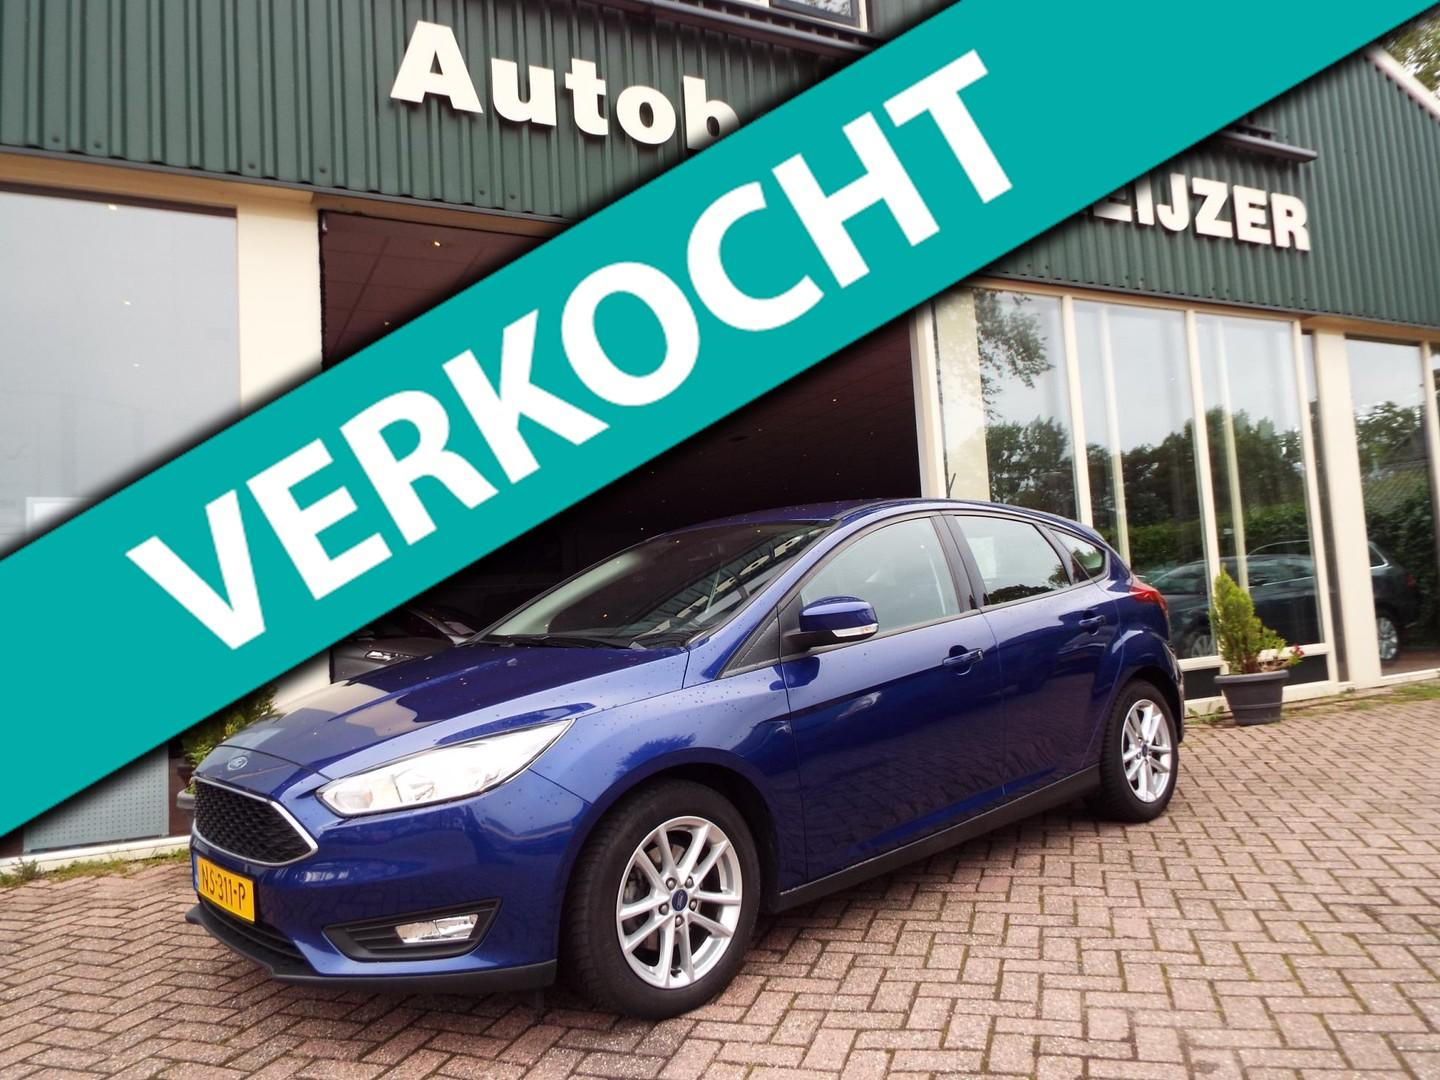 Ford Focus 1.5 tdci lease edition navi-clima-cruise-bovag-nap